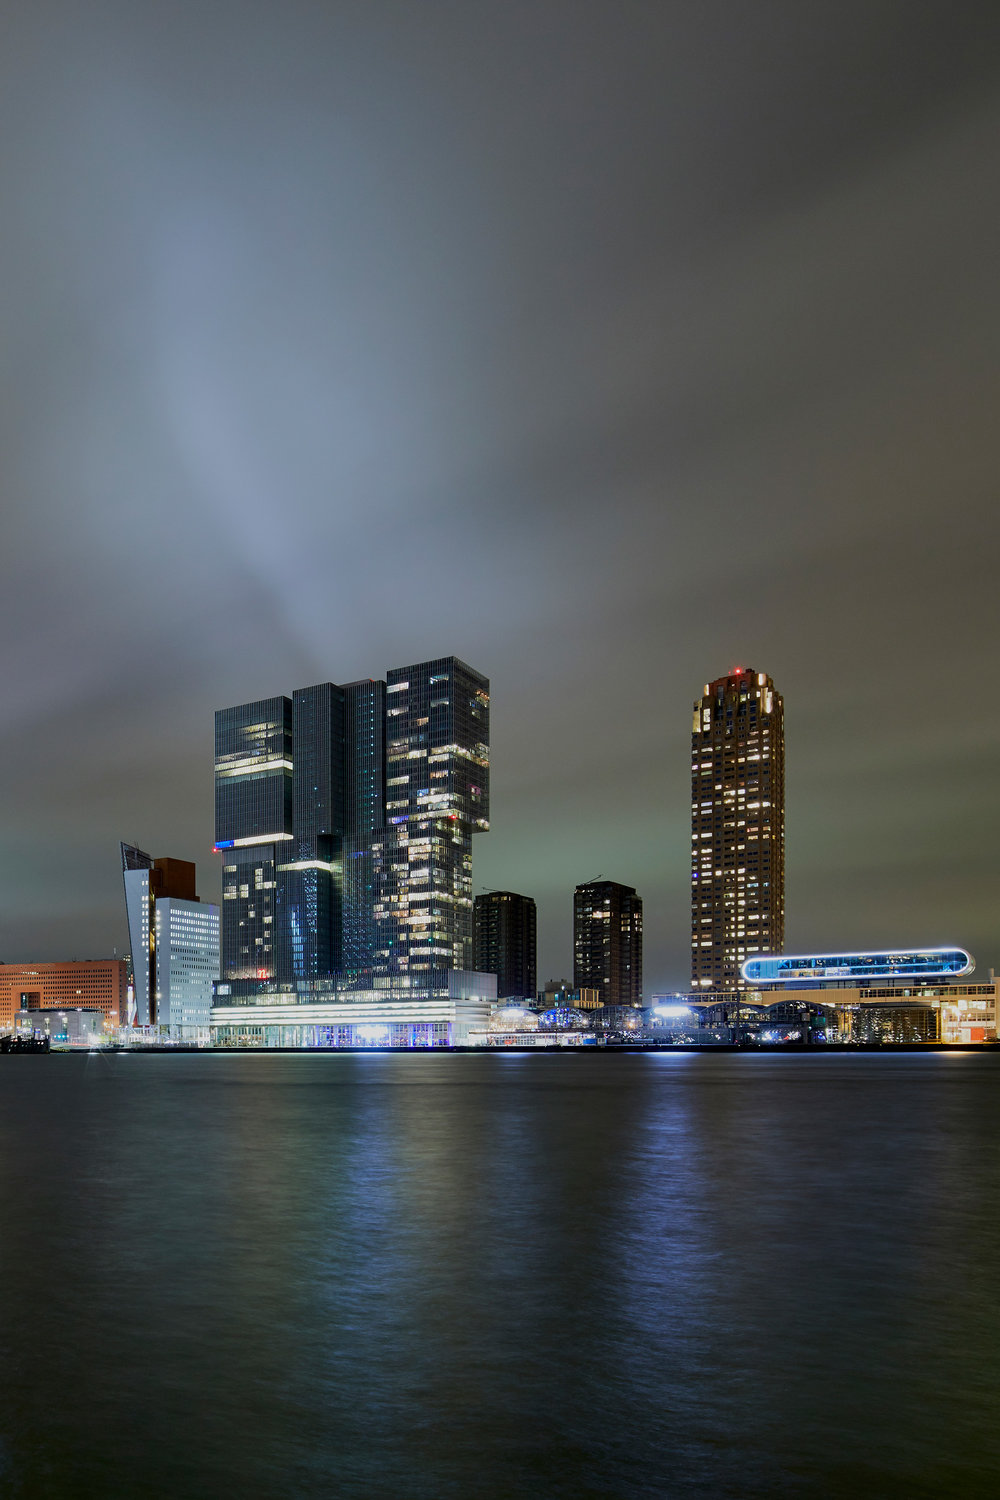 Rotterdam-Corporate-Branko-Starcevic.jpg